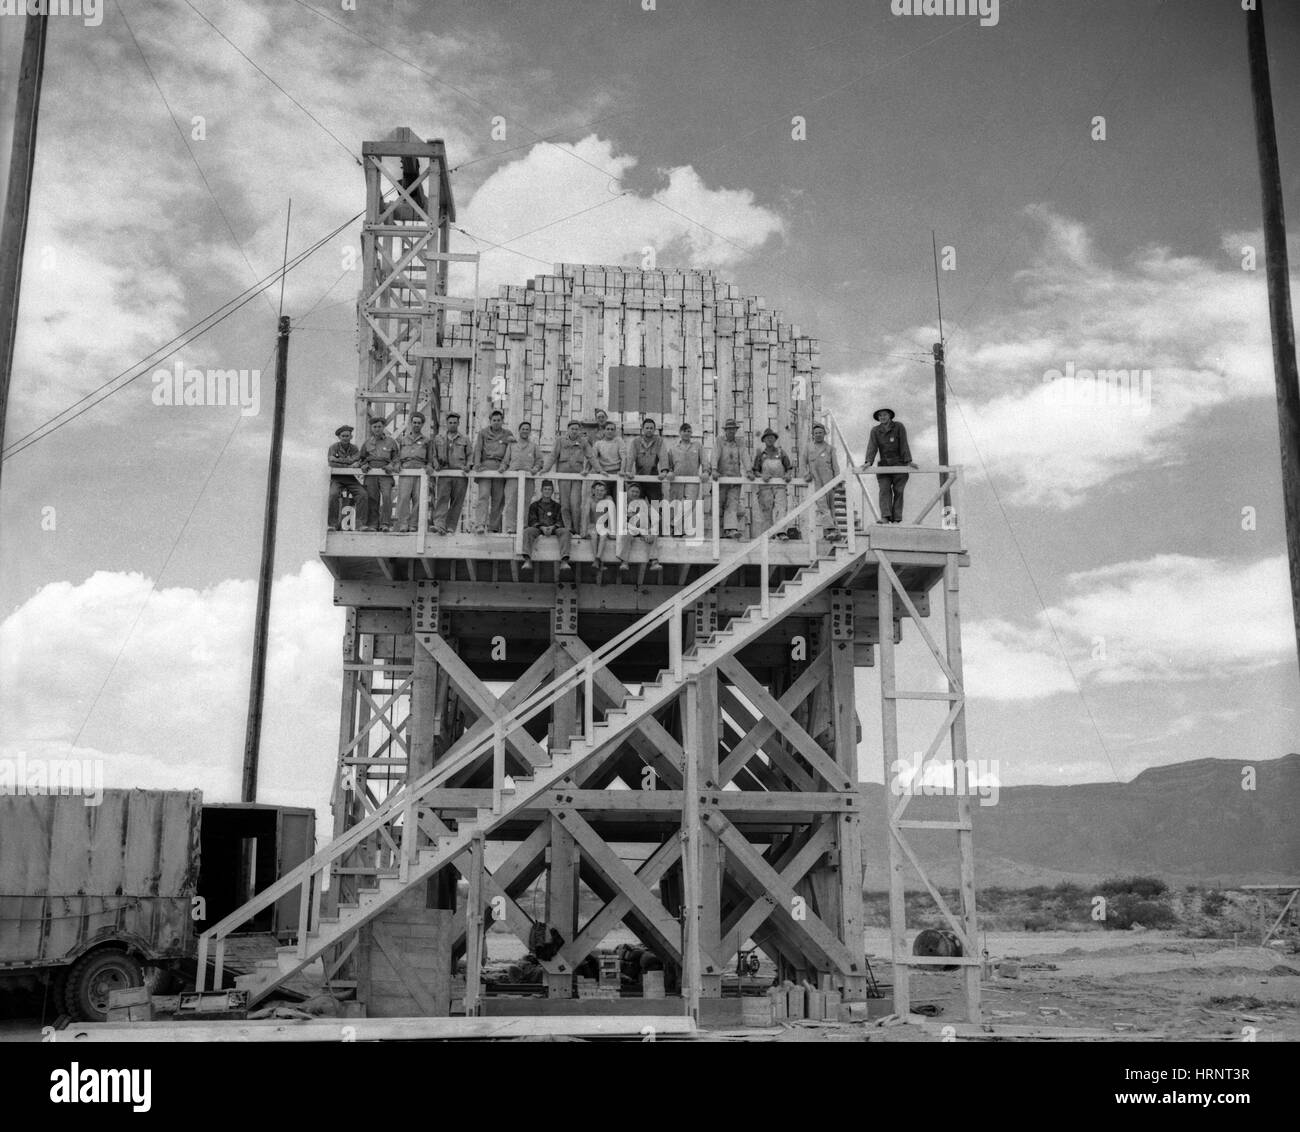 the manhattan project the desert test They recall their work on the manhattan project, the first atomic bomb test but the dazzling white light all around on the desert and mountains seemed far.